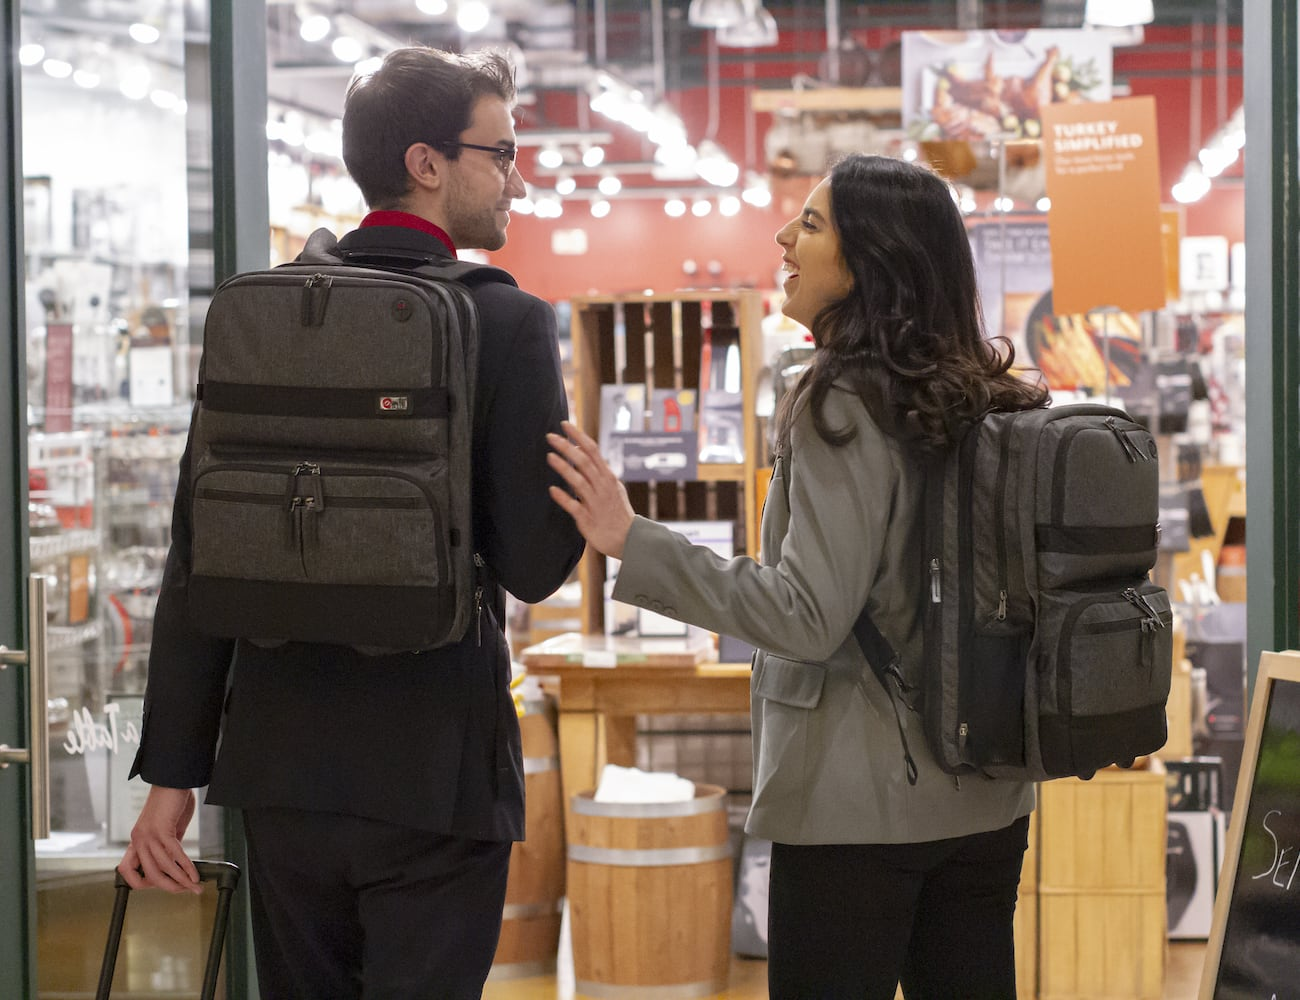 The Venture Rolling Pack Is A Luggage System With Three Parts